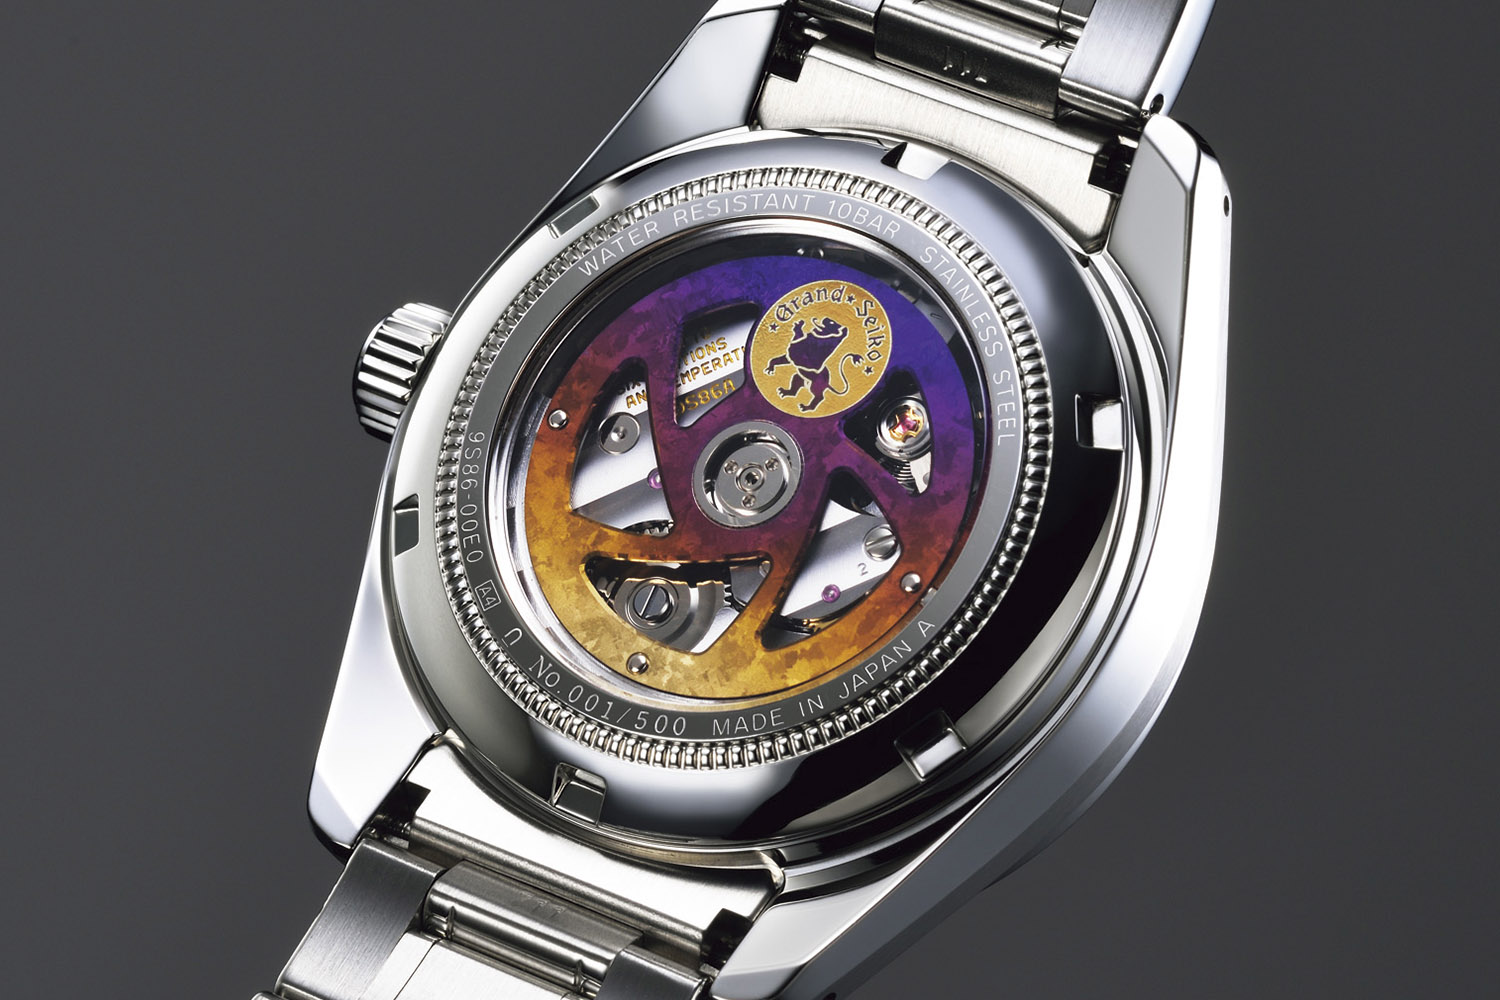 grand seiko hi-beat 36000 gmt limited edition sbgj021 - calibre 9S86